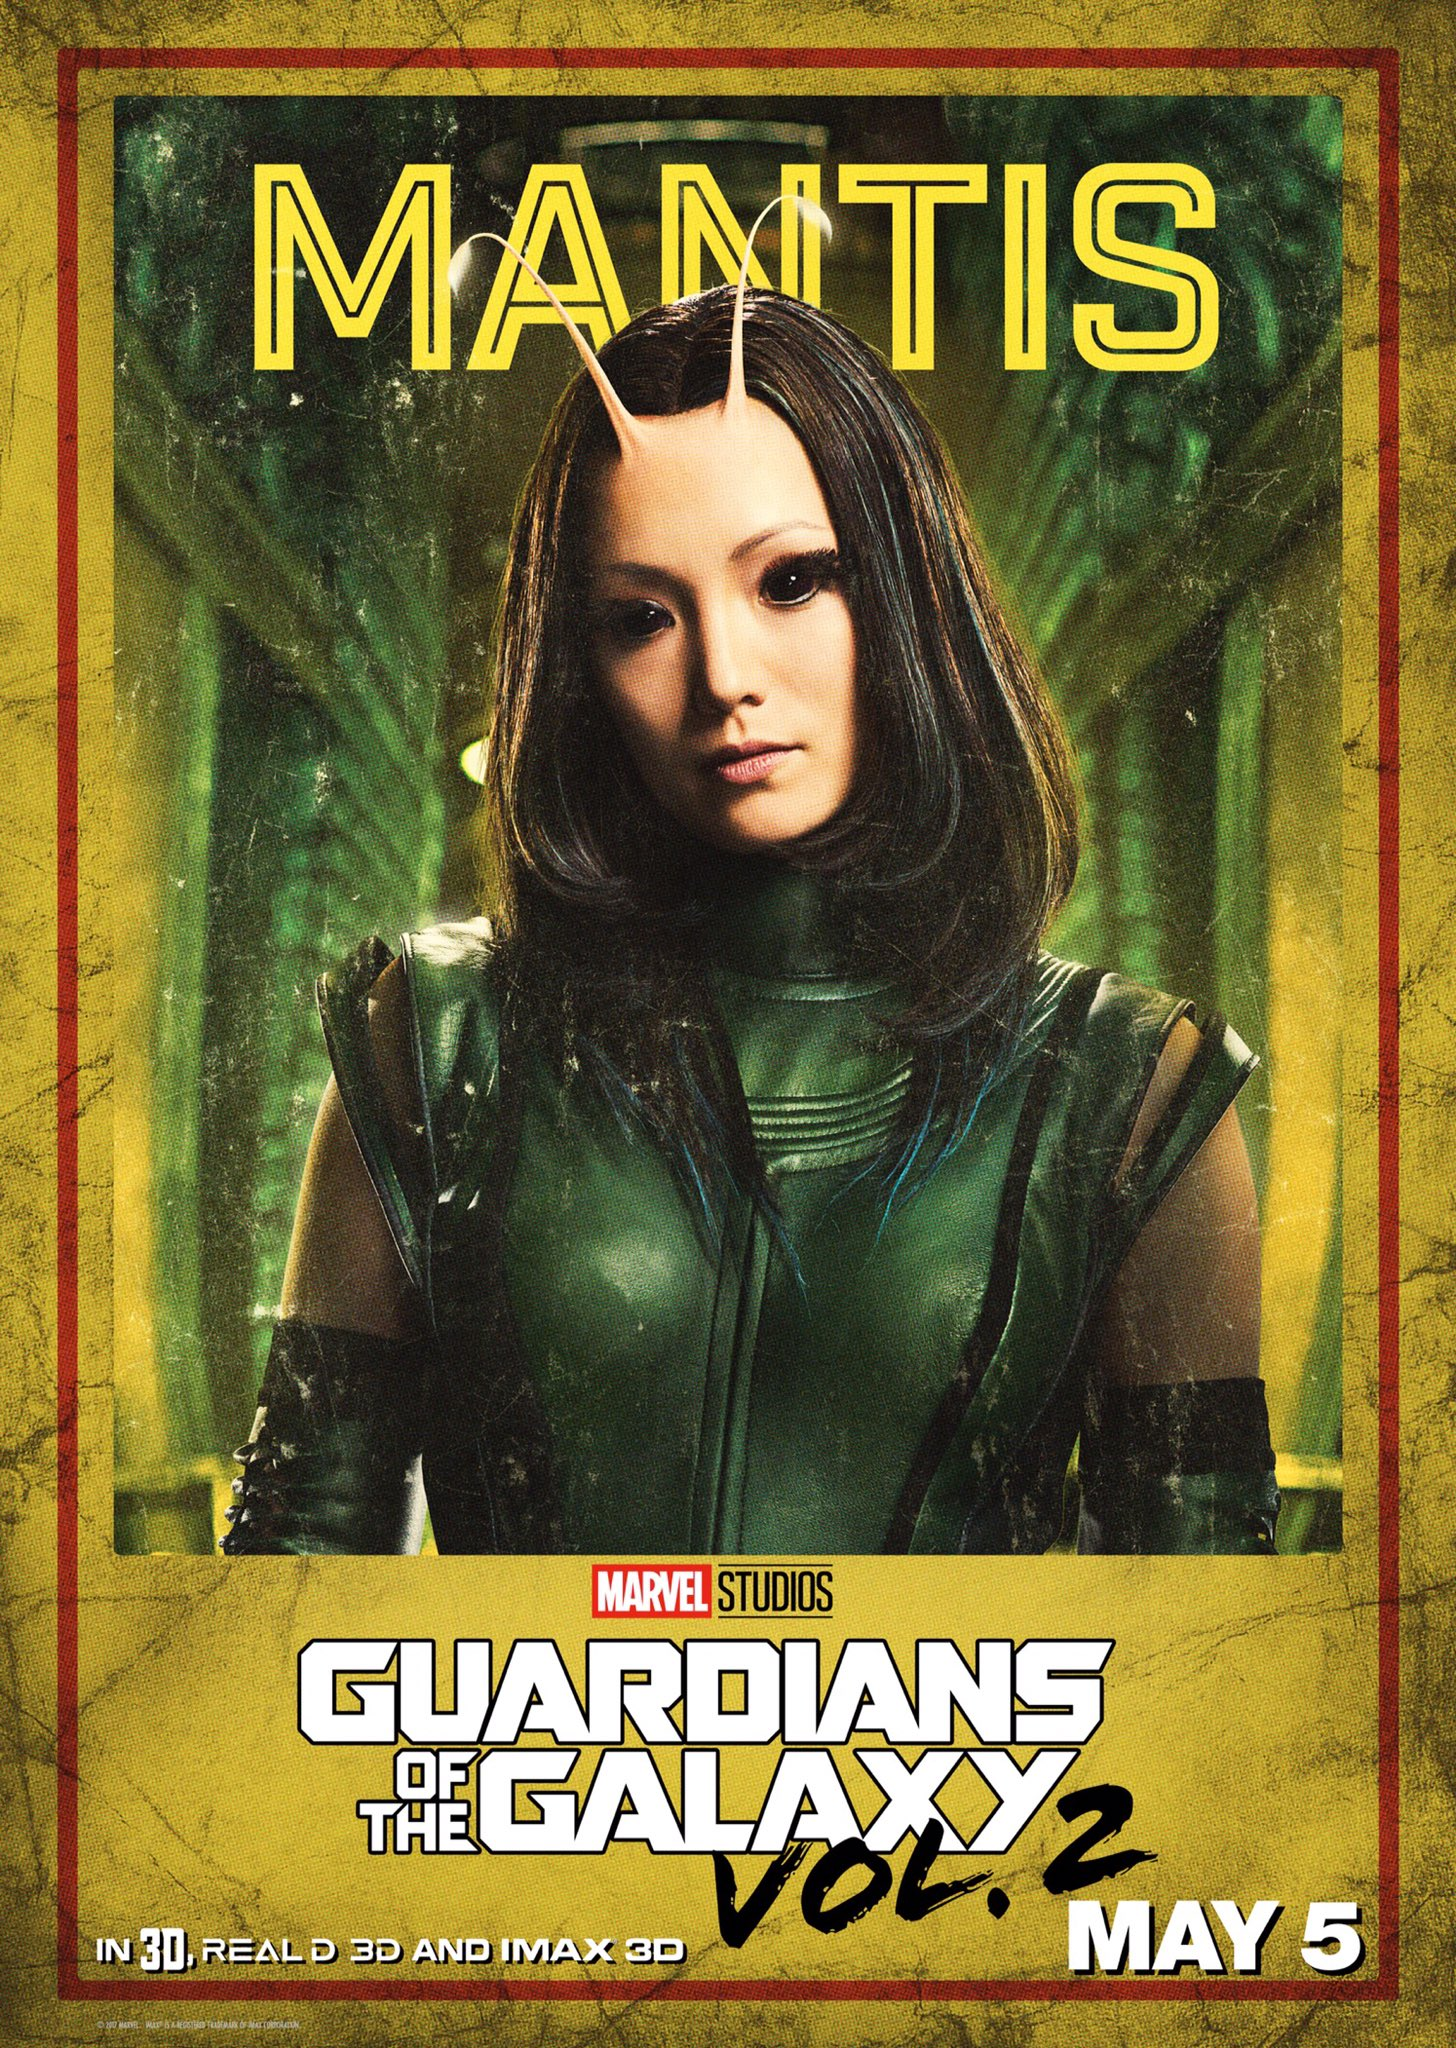 Guardian-of-the-galaxy-vol-2-high-quality-printable-posters-wallpapers-mantis